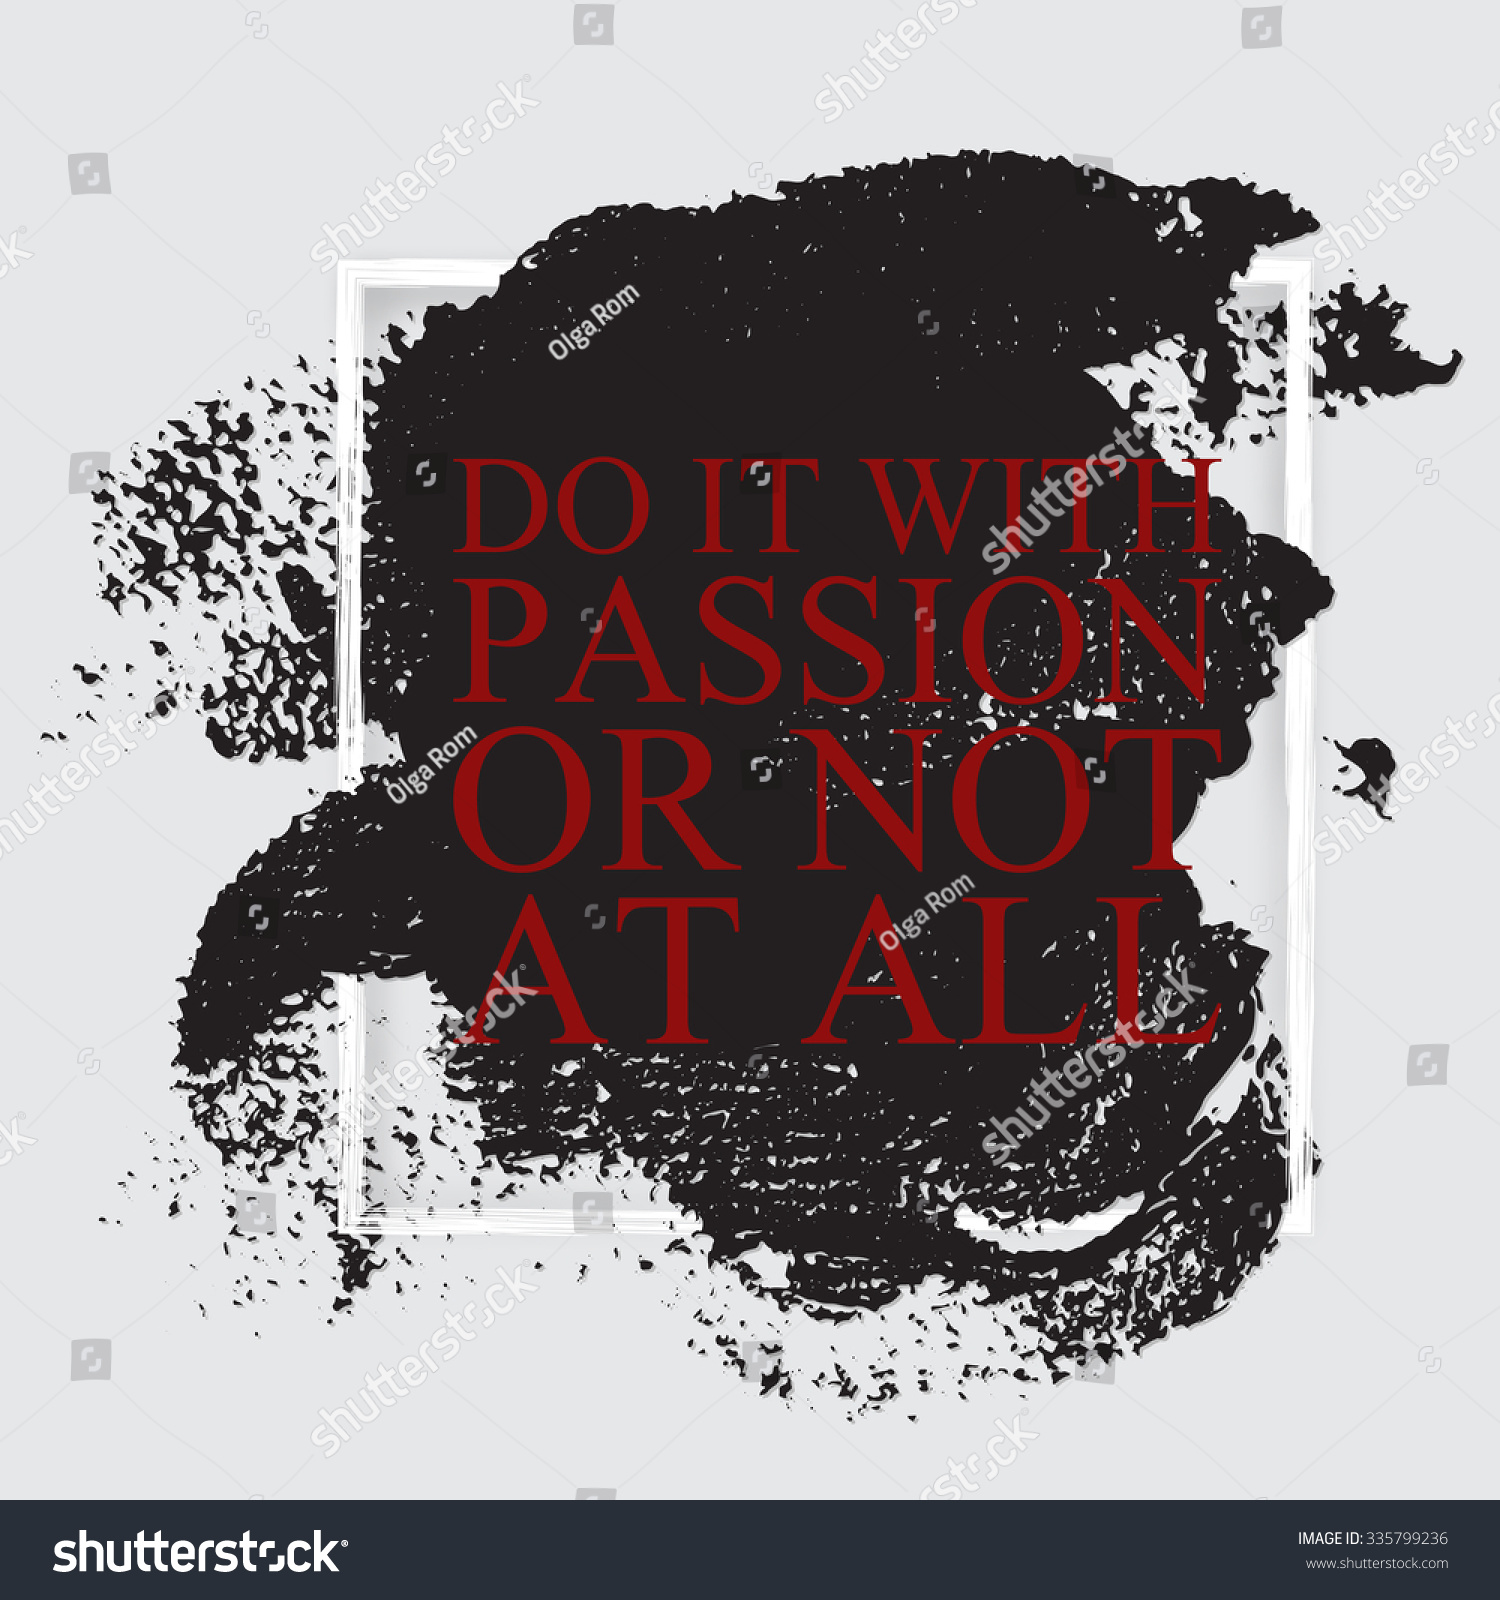 do passion not all inspirational motivational stock vector do it passion or not at all inspirational motivational career quote on the hand